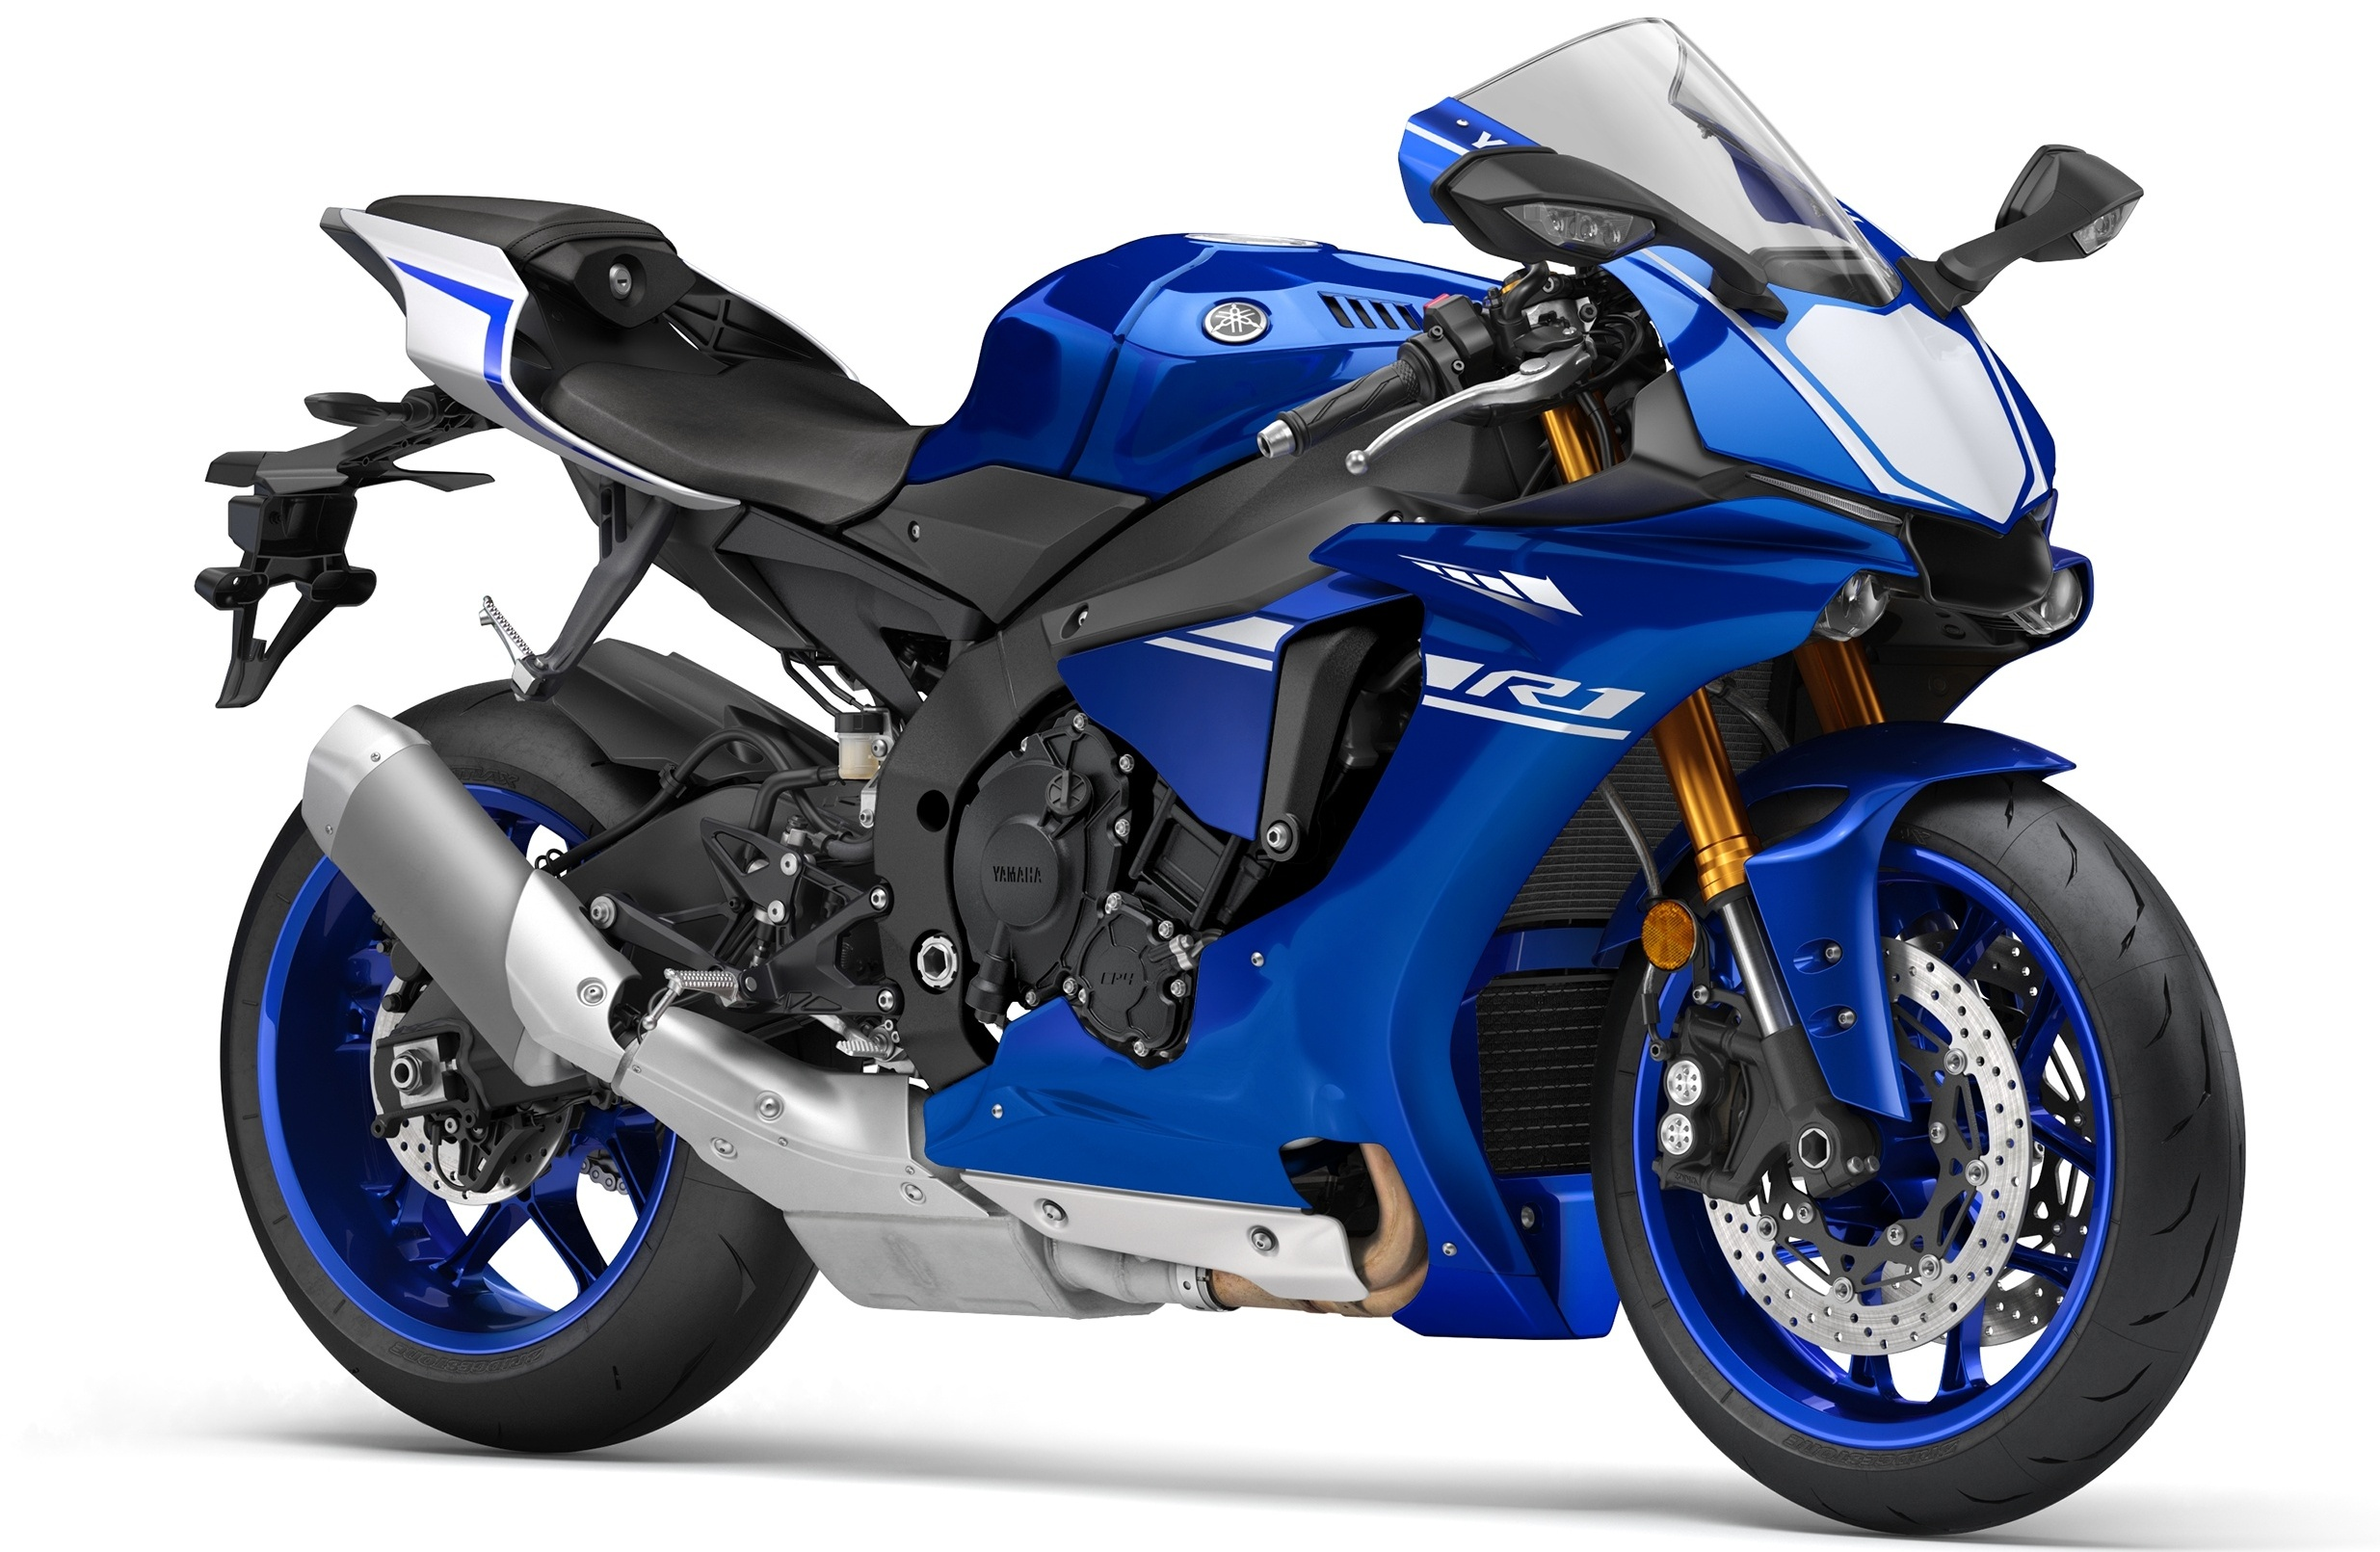 2017 Yamaha Motorcycles Get New Colour Schemes Image 556045